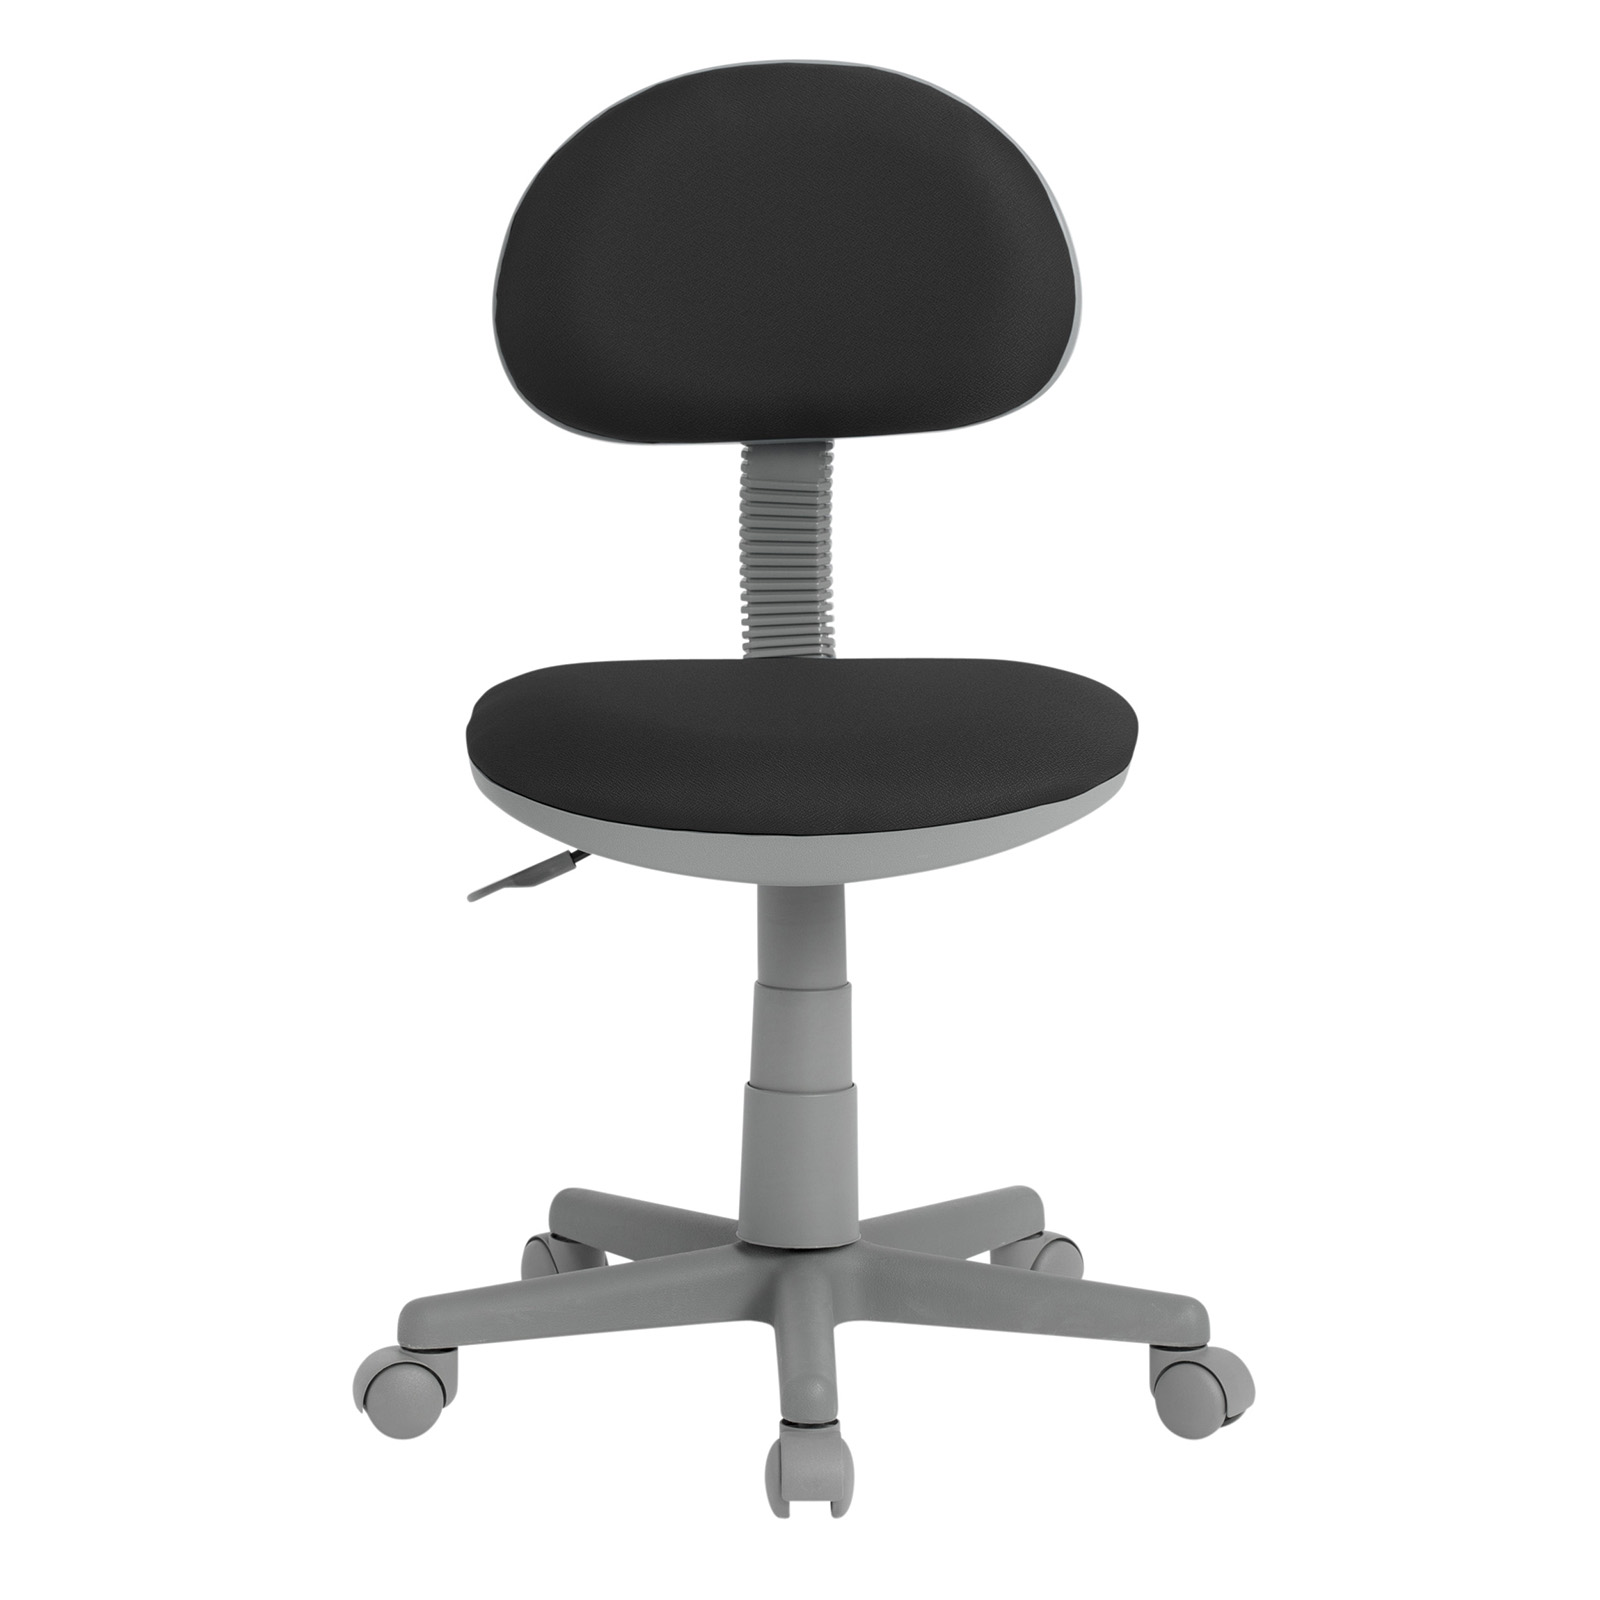 Merveilleux Calico Designs Deluxe Task Chair